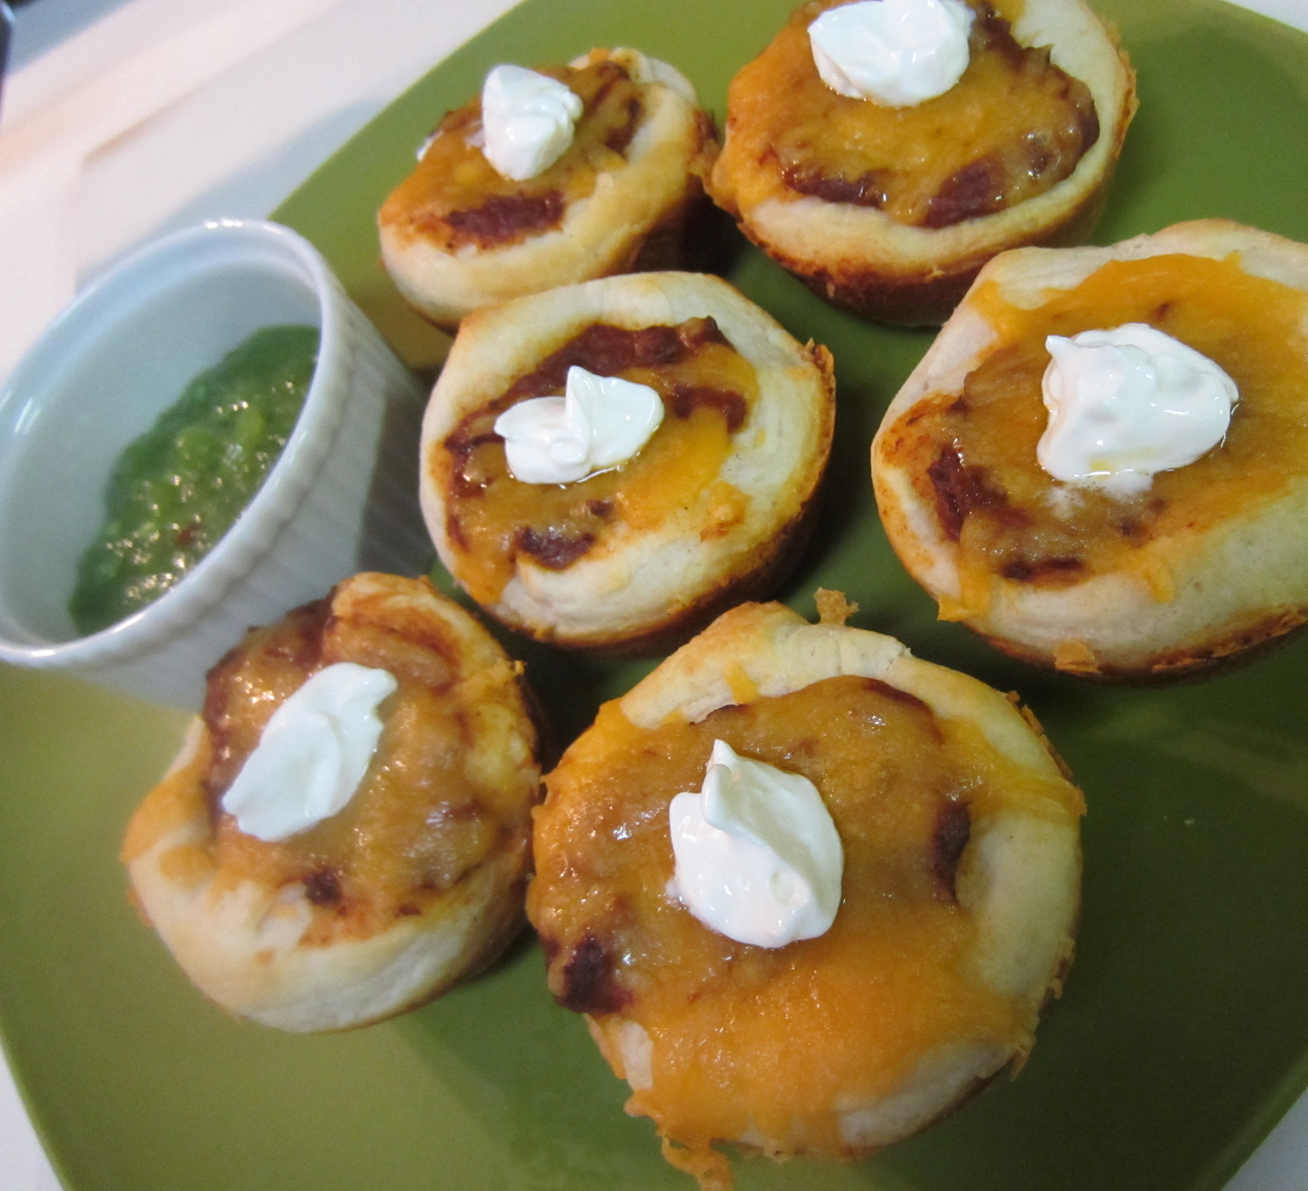 Superbowl Snacks - Chili Cheese Biscuits at ALittleClaireification.com #superbowlsnacks #superbowlfood #recipes #superbowl